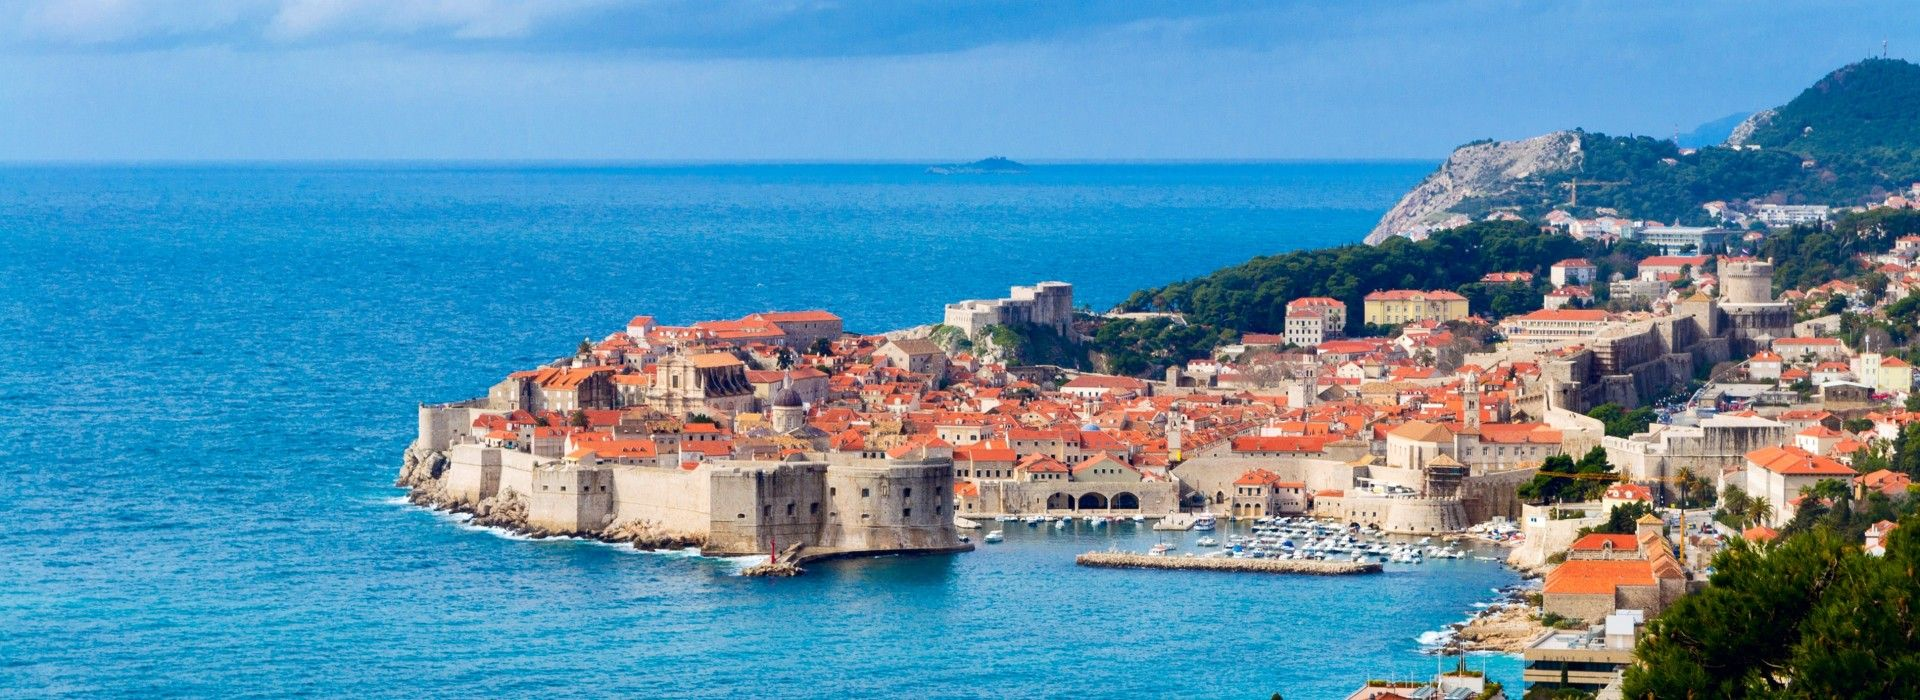 Countryside and village visits Tours in Dubrovnik